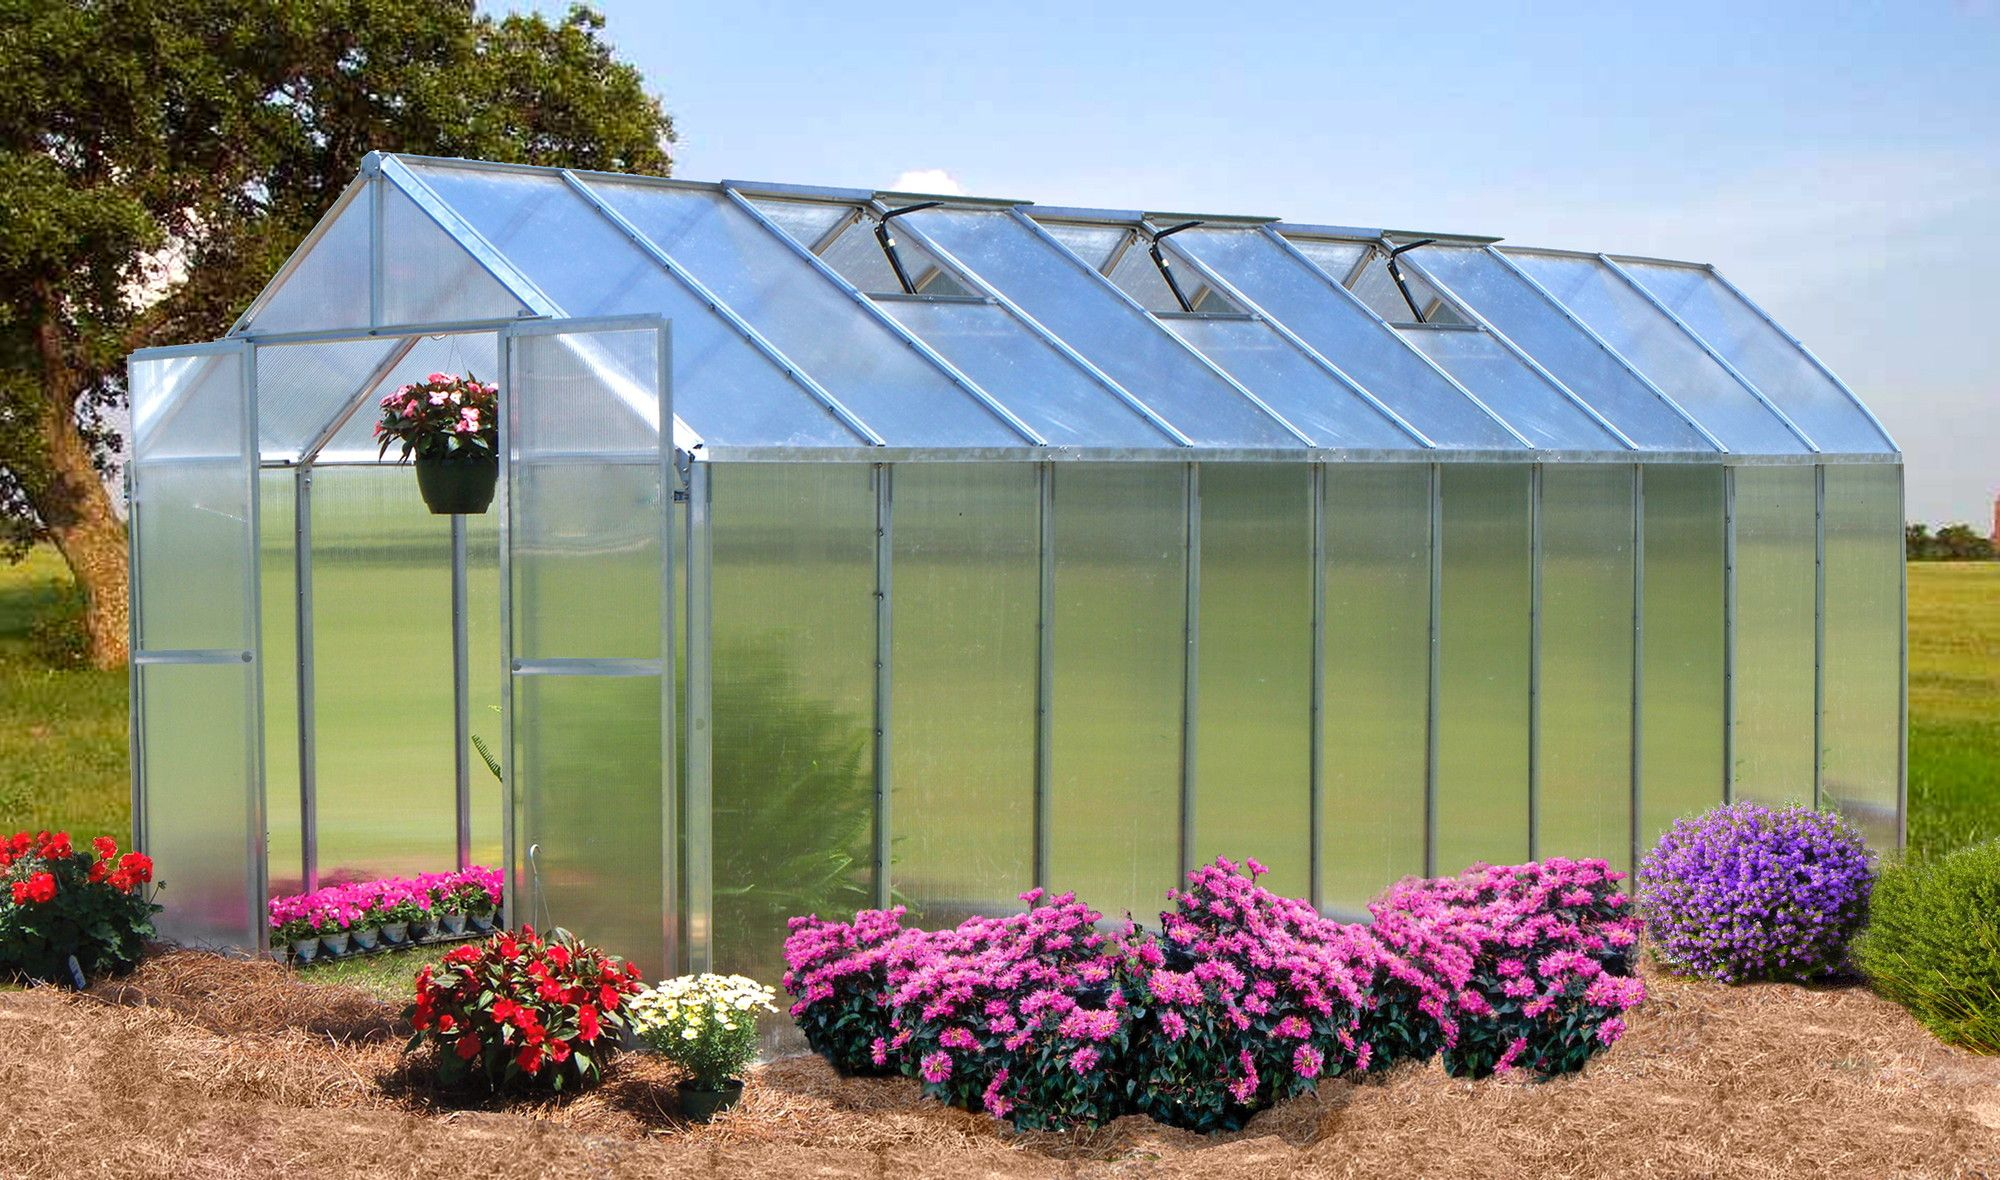 Riverstone Industries Corporation Monticello 4 Ft Greenhouse Extension Wayfair Greenhouse Backyard Greenhouse Aquaponics Backyard greenhouse kits for sale